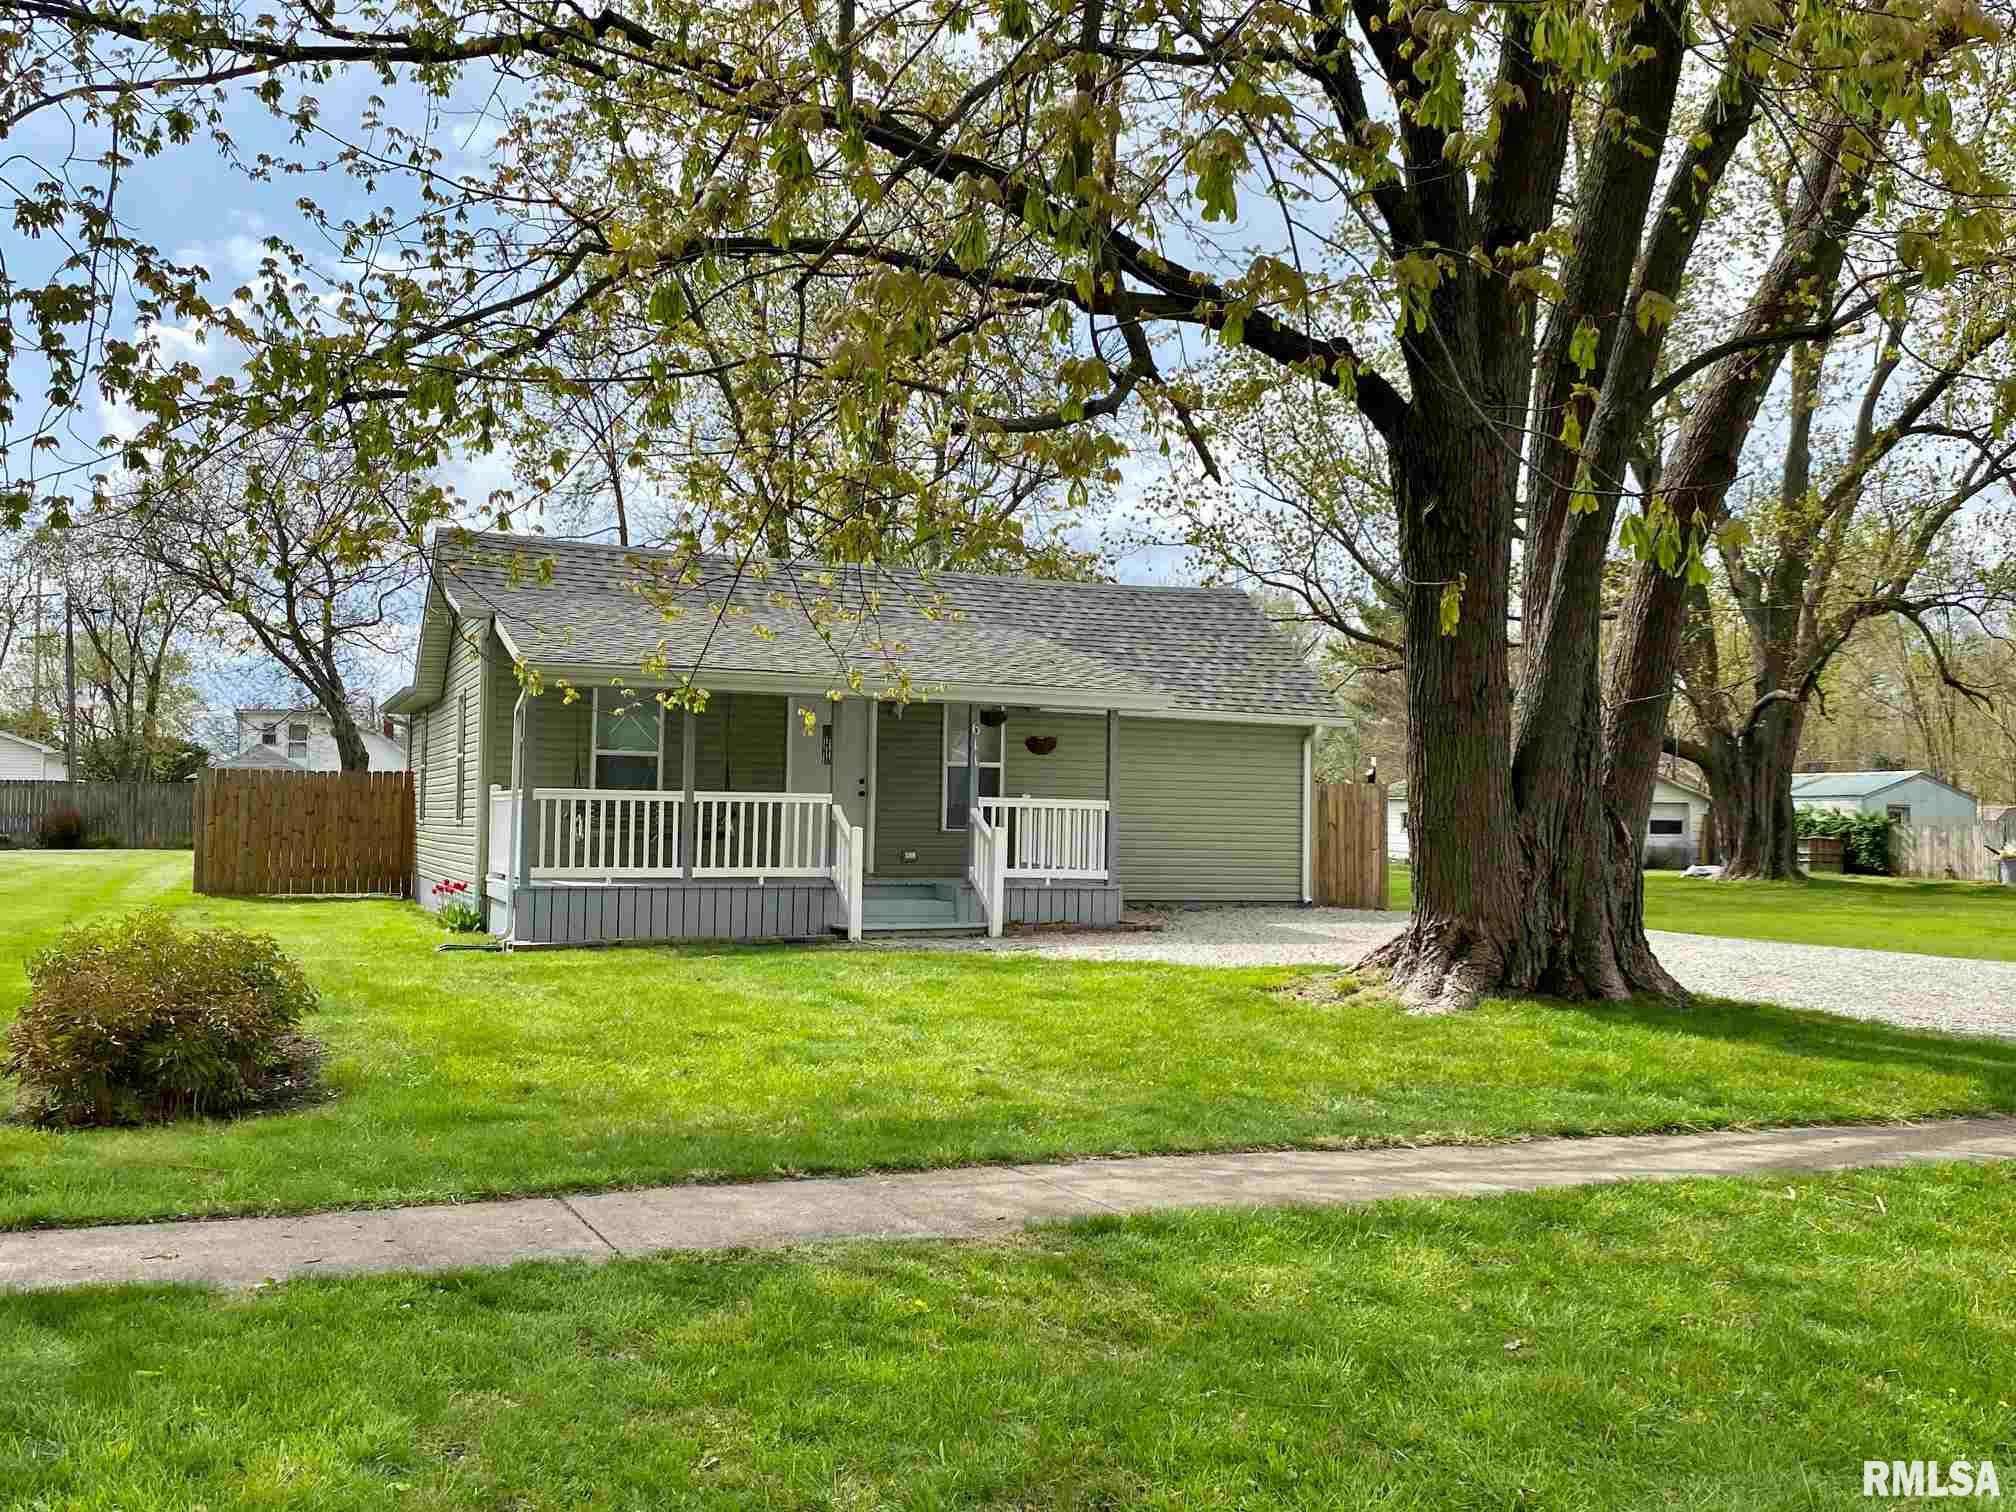 611 N MAIN Property Photo - Athens, IL real estate listing